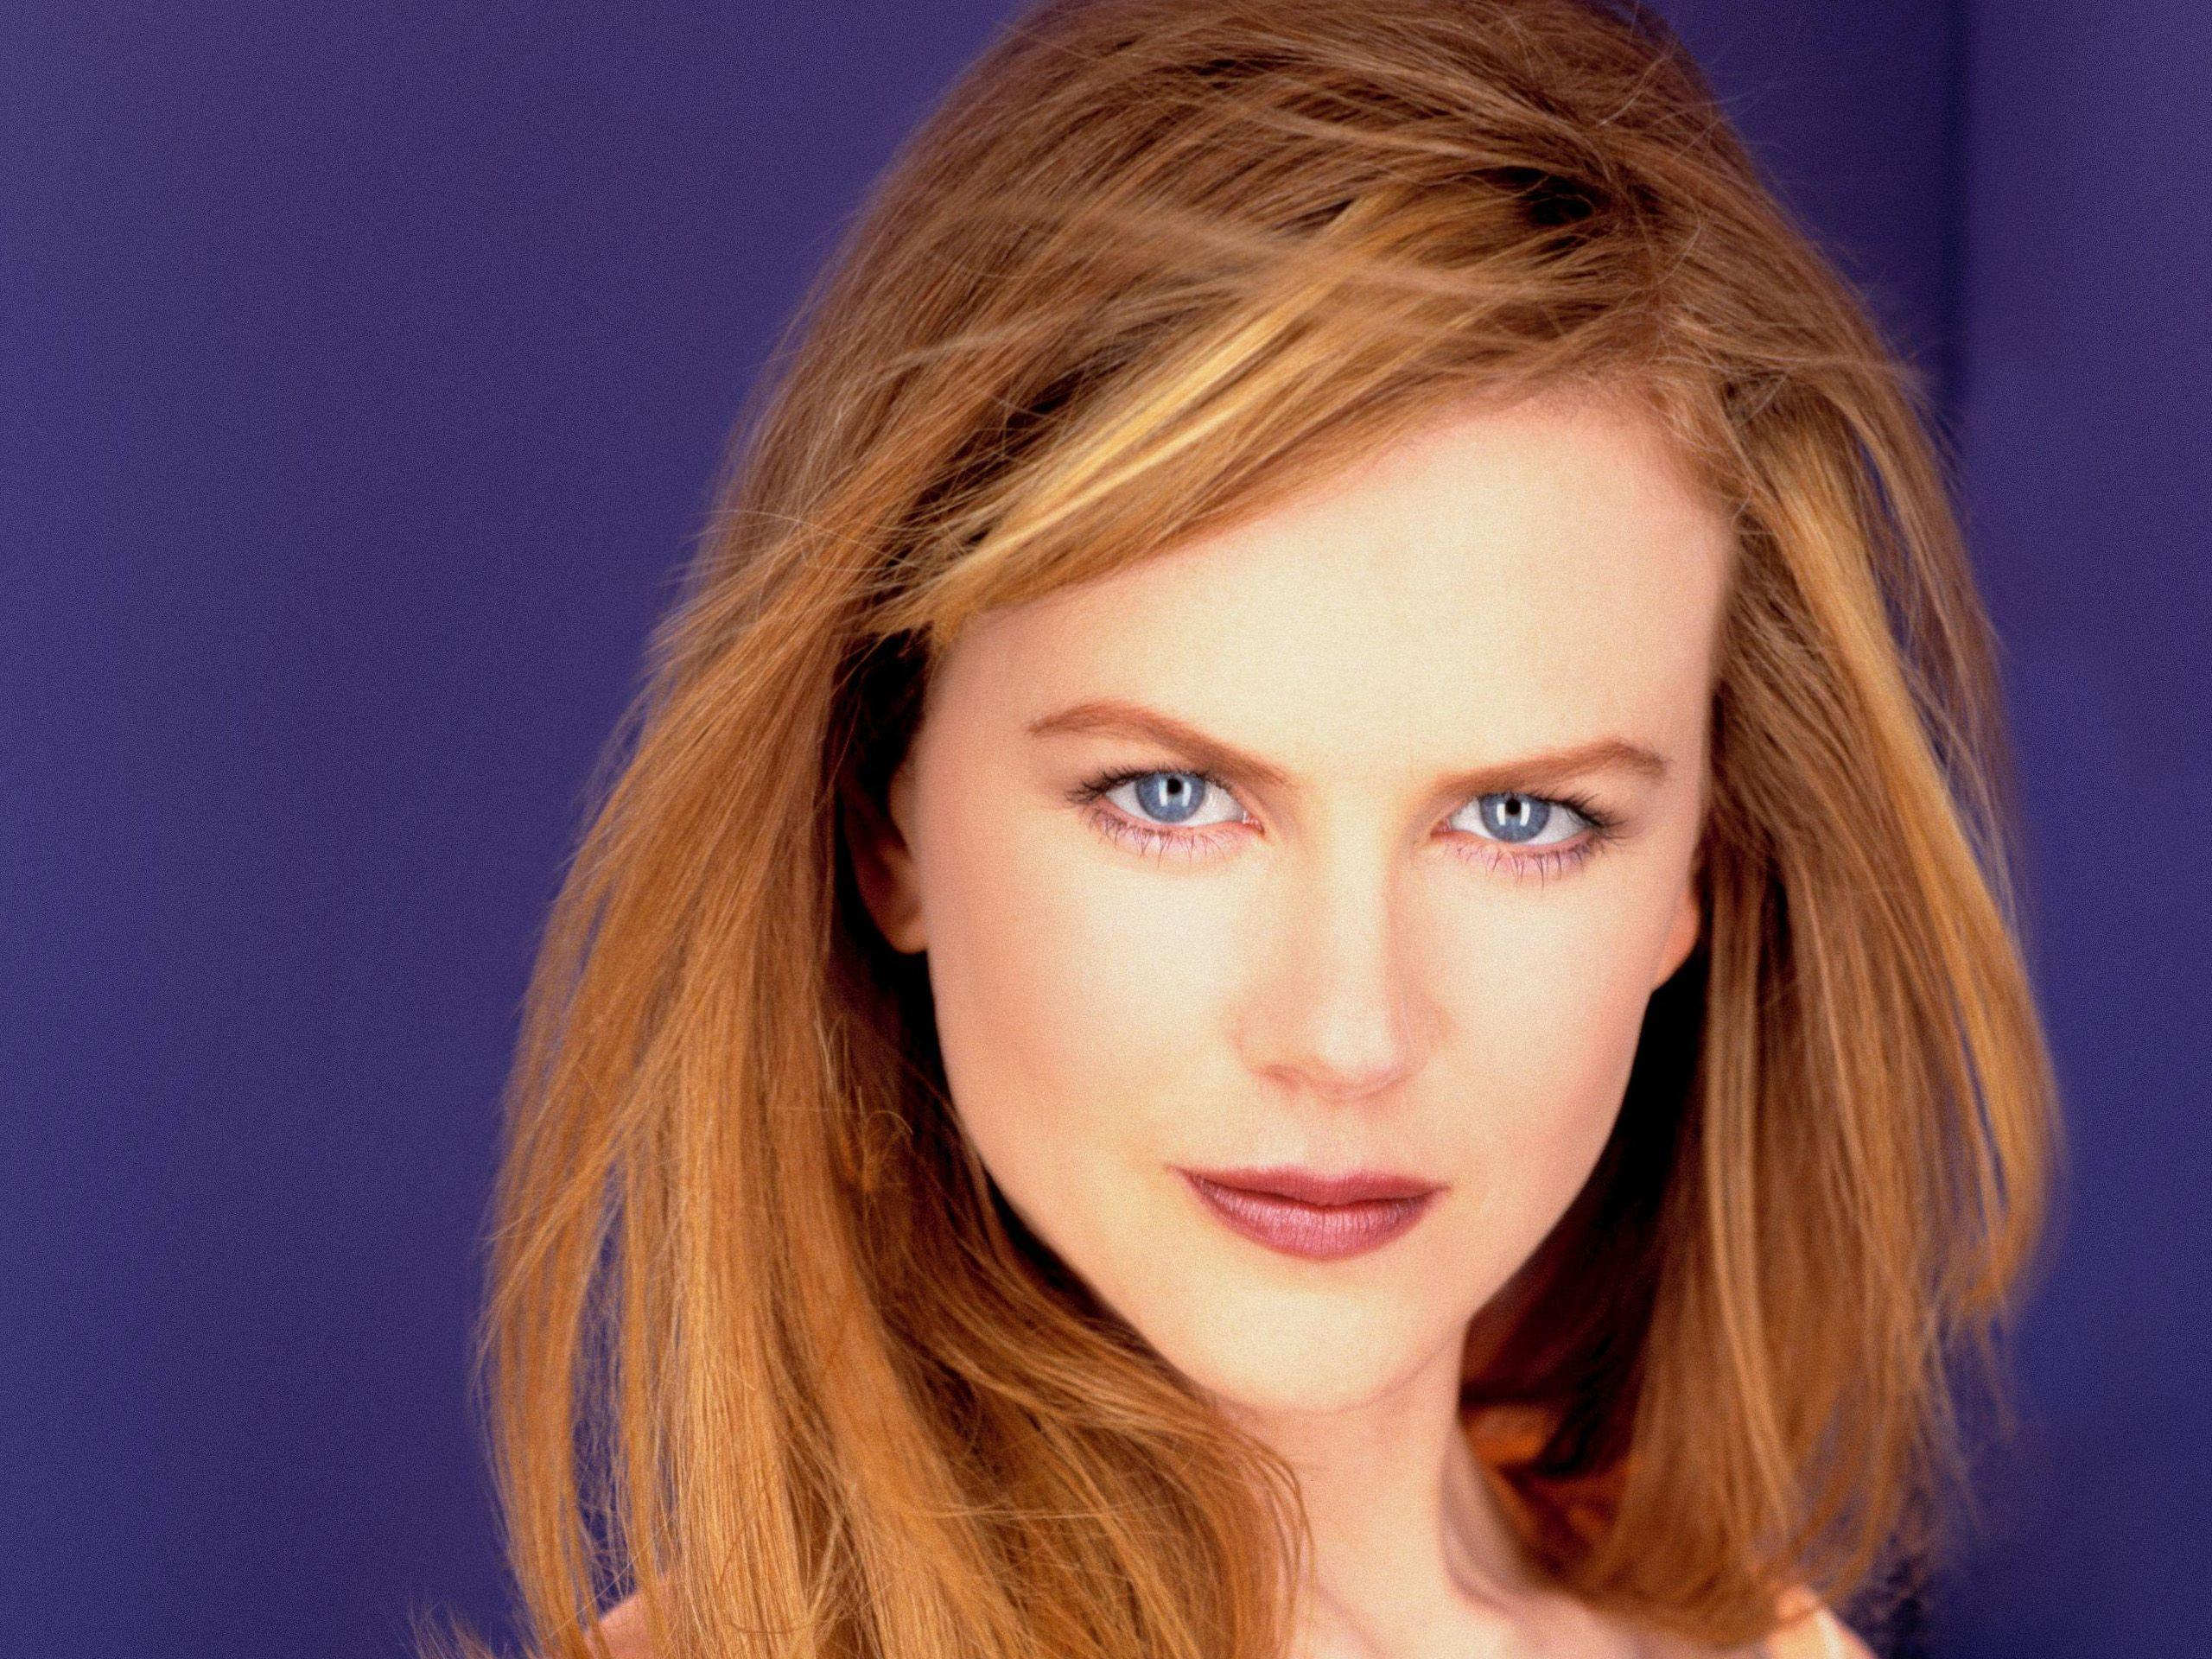 Nicole Kidman Wallpapers High Resolution and Quality Download